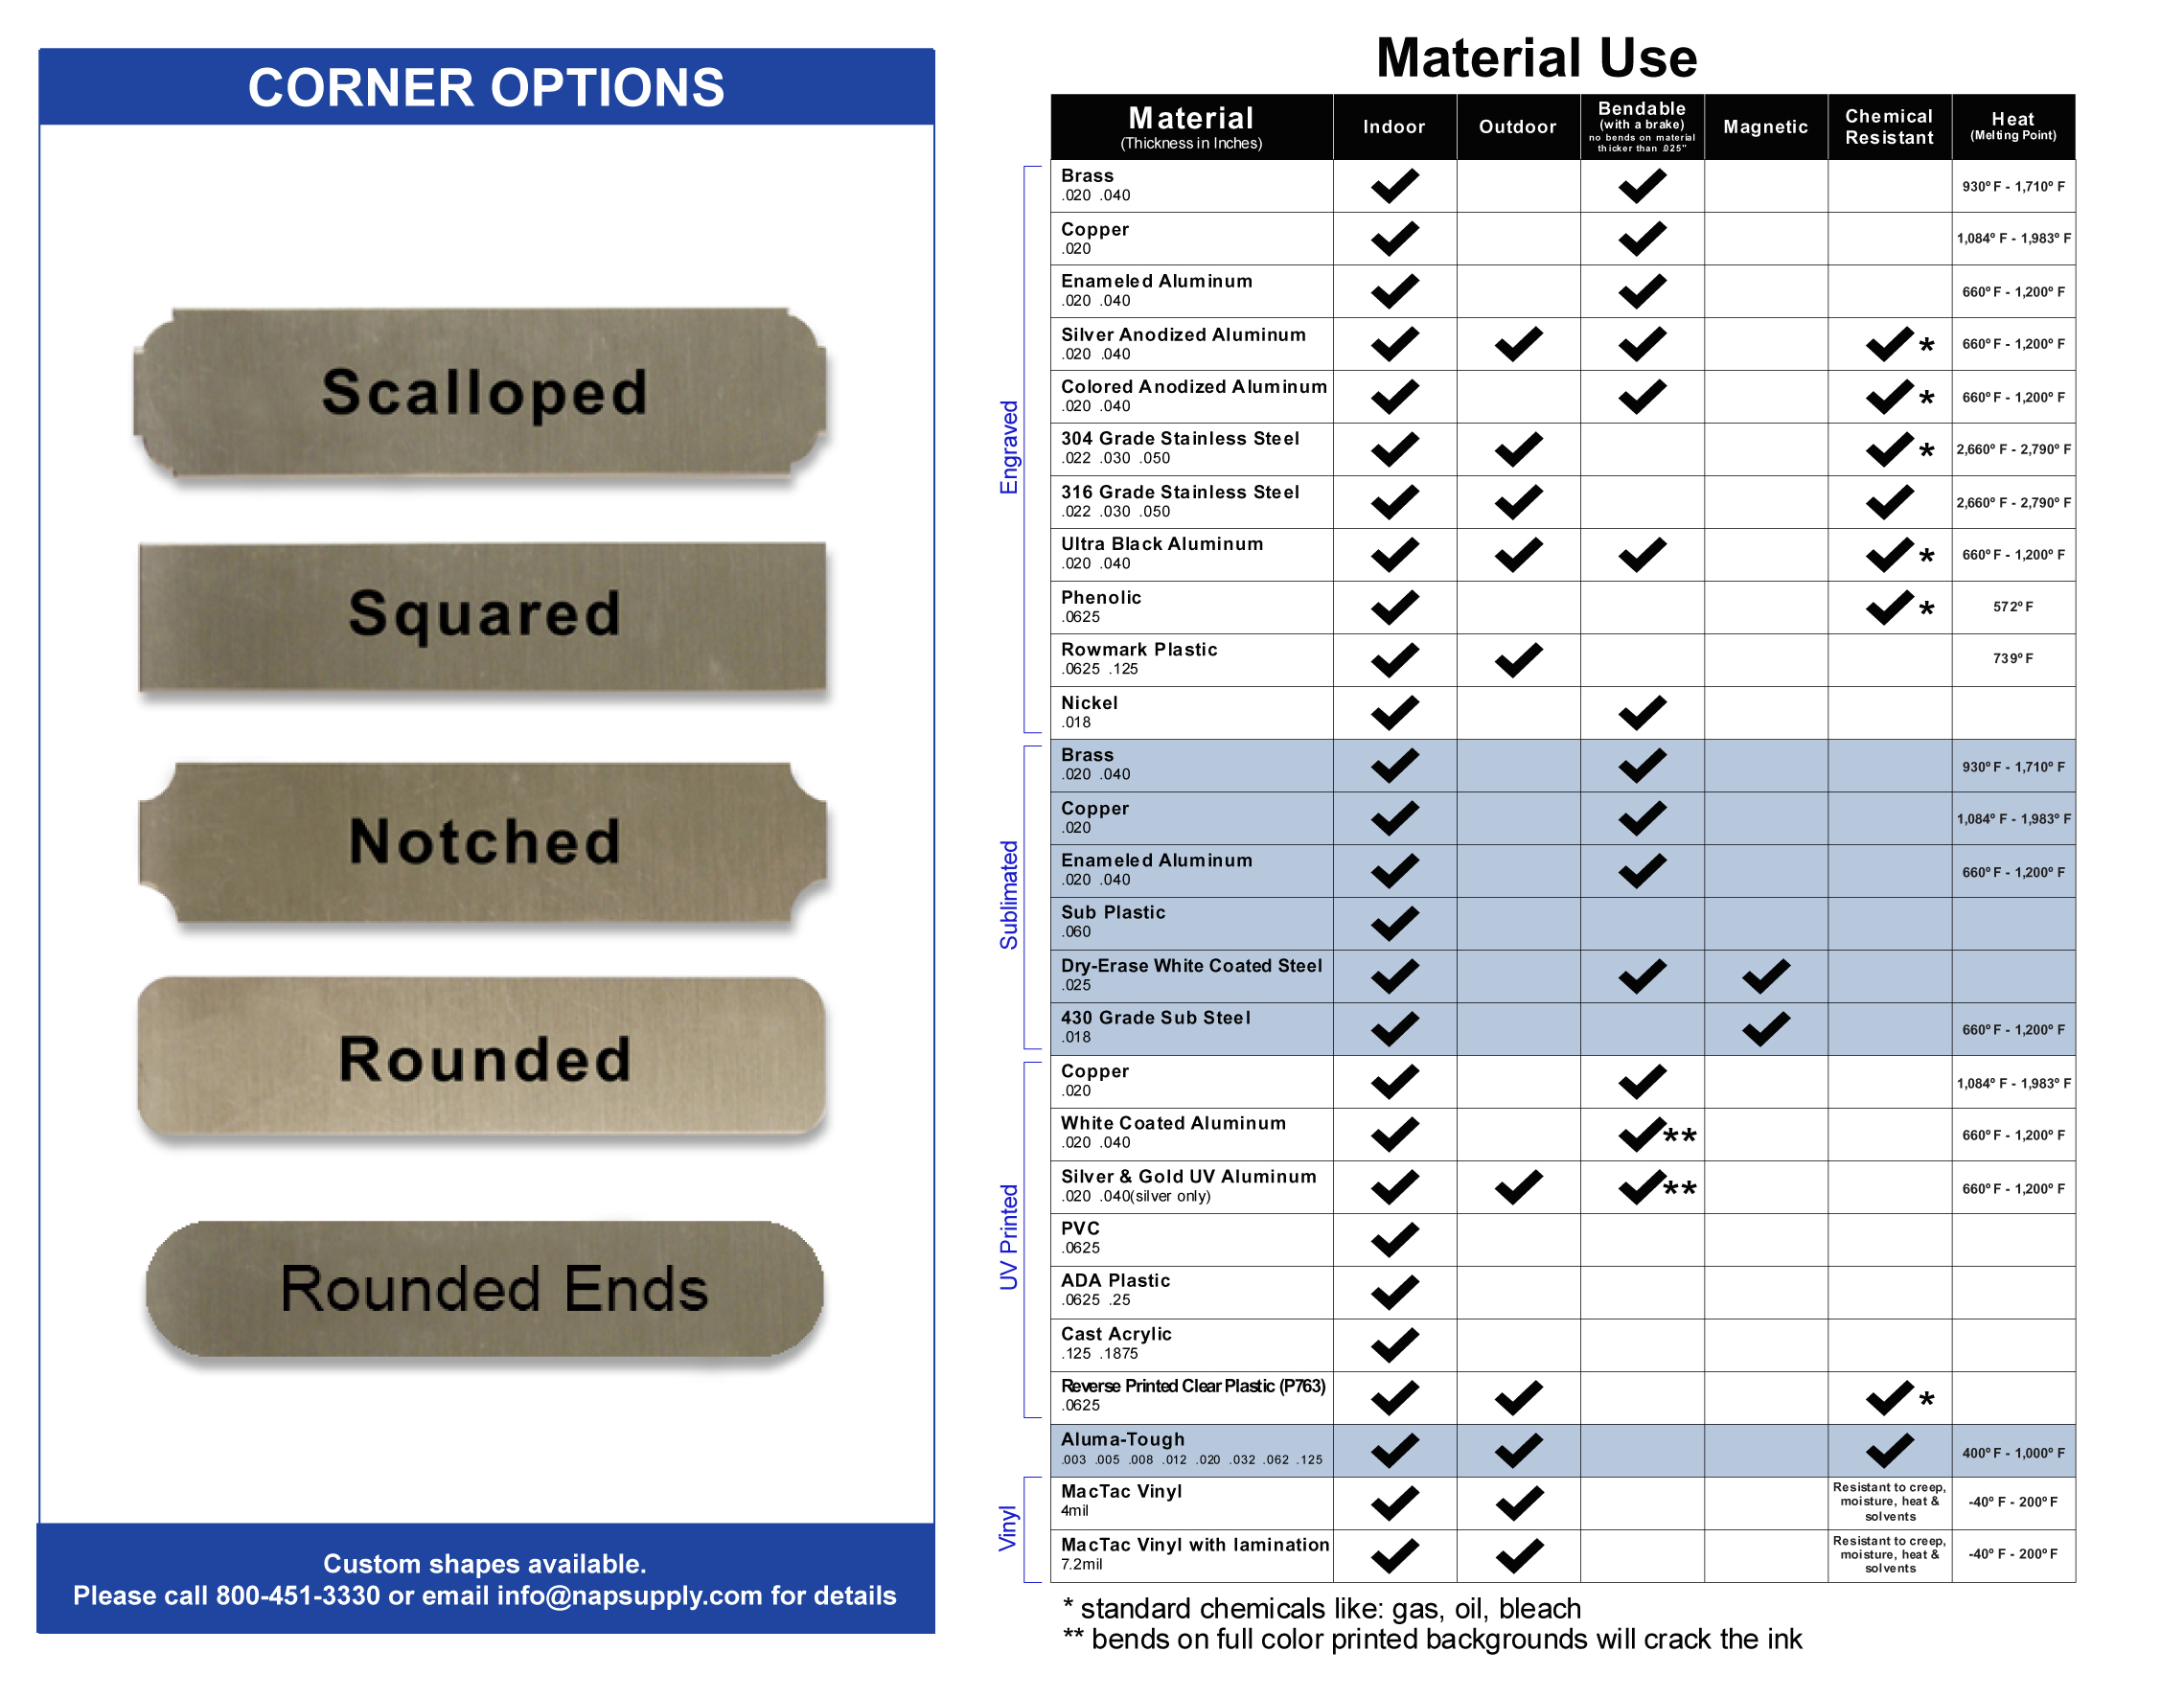 NapTags-Corners-and-Material-Use-01.jpg#asset:16510